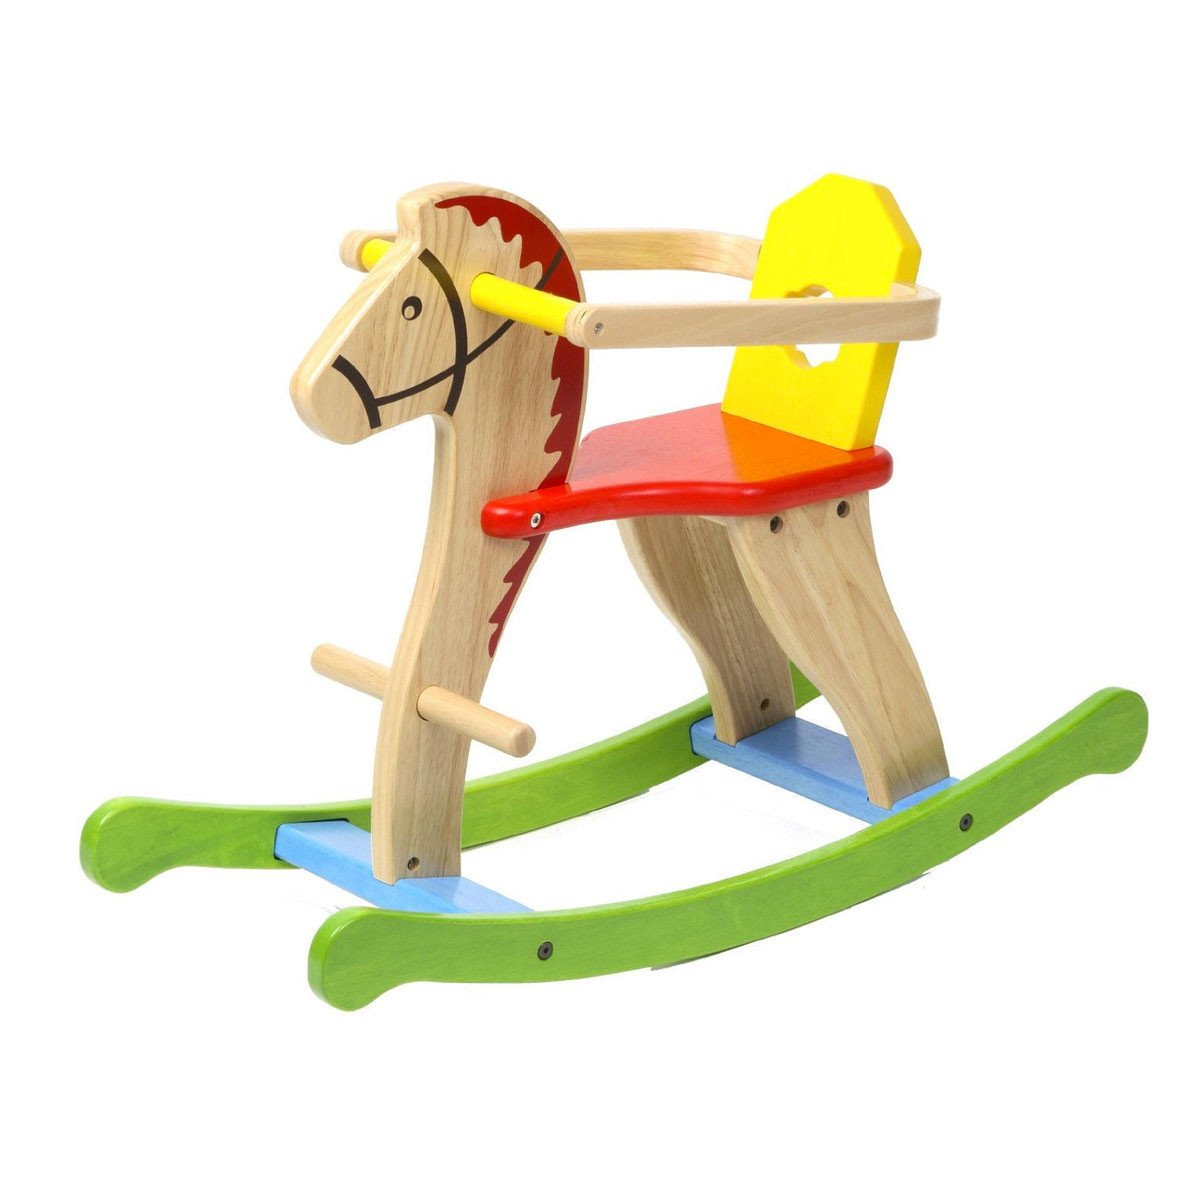 Classic Wooden Rocking Horse with Removable Guard Colourful Little Earth Nest Rocking Horses at Little Earth Nest Eco Shop